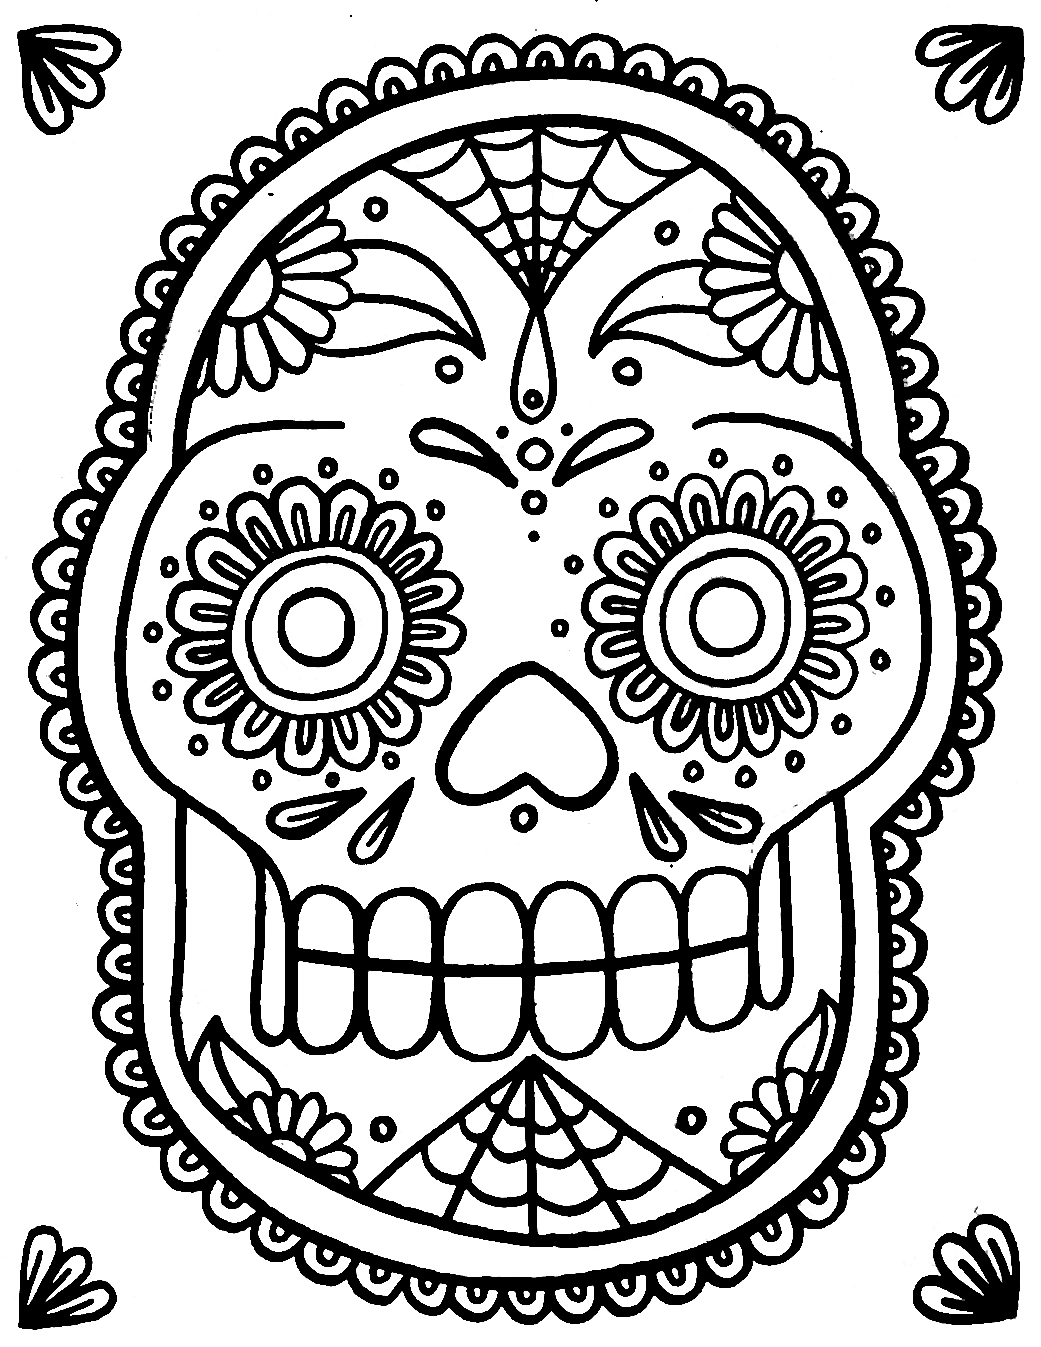 coloring pages skull yucca flats nm wenchkin39s coloring pages spongebob coloring skull pages